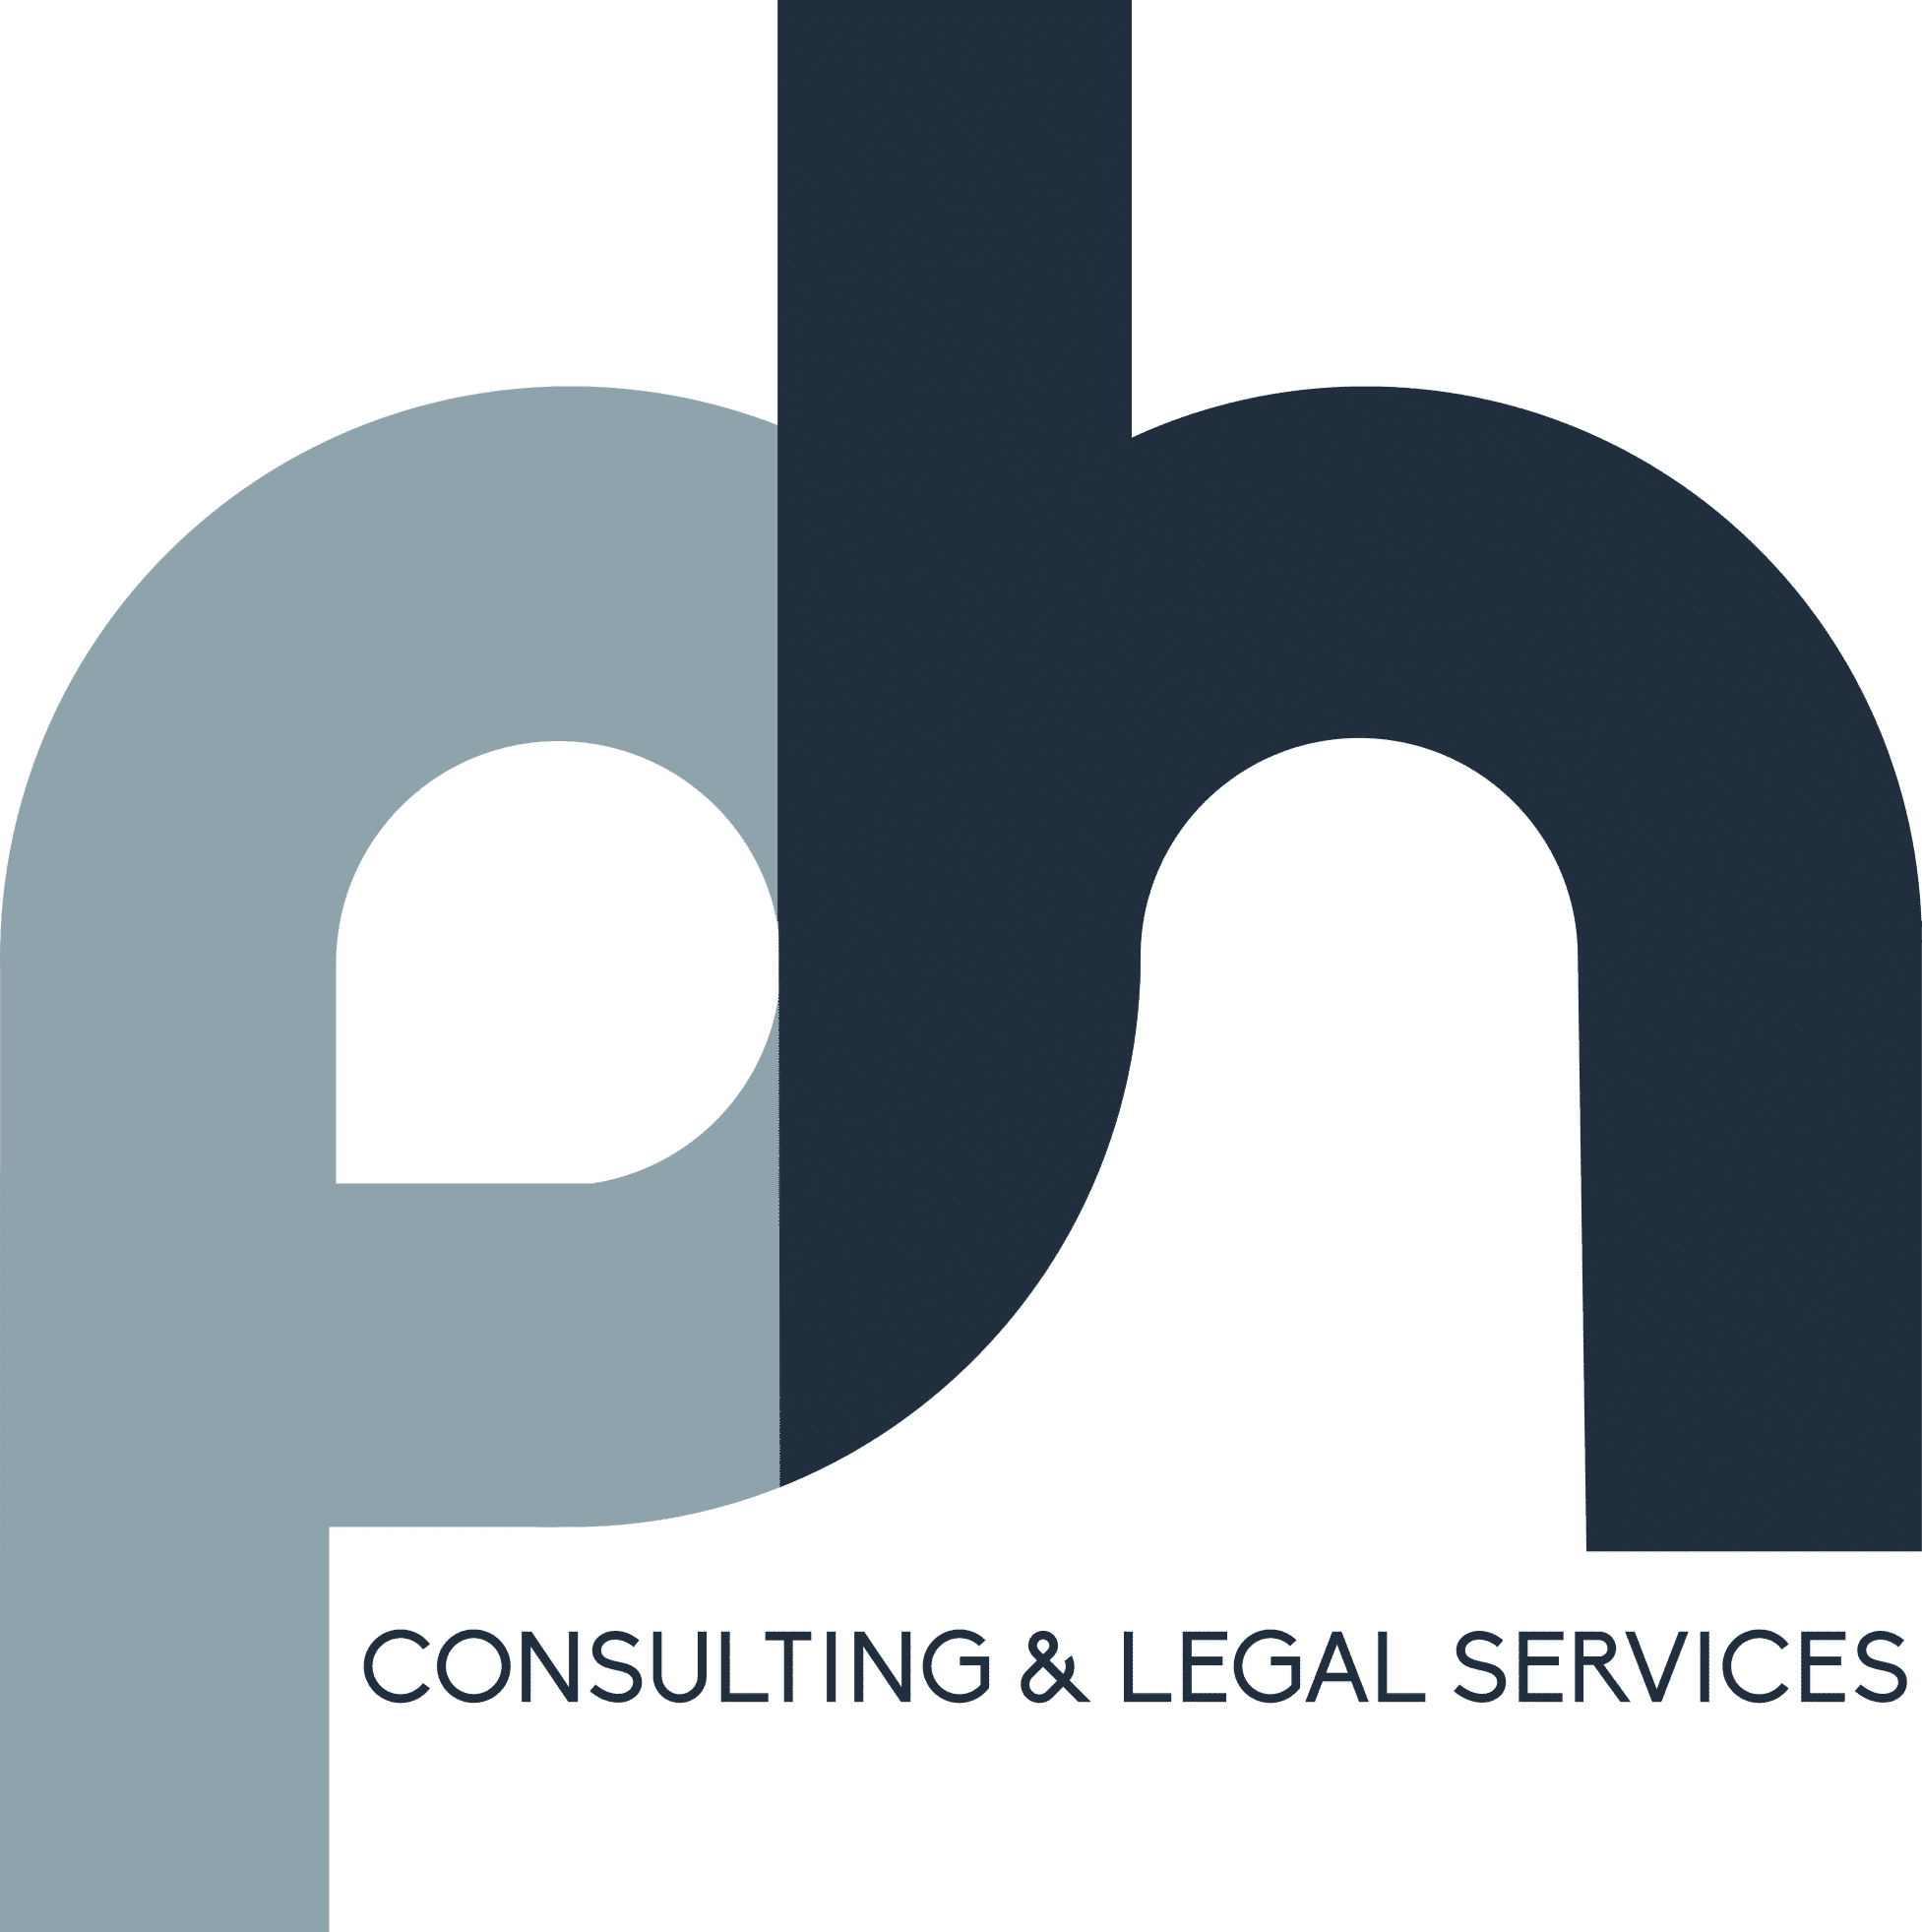 PH Consulting & Legal Services